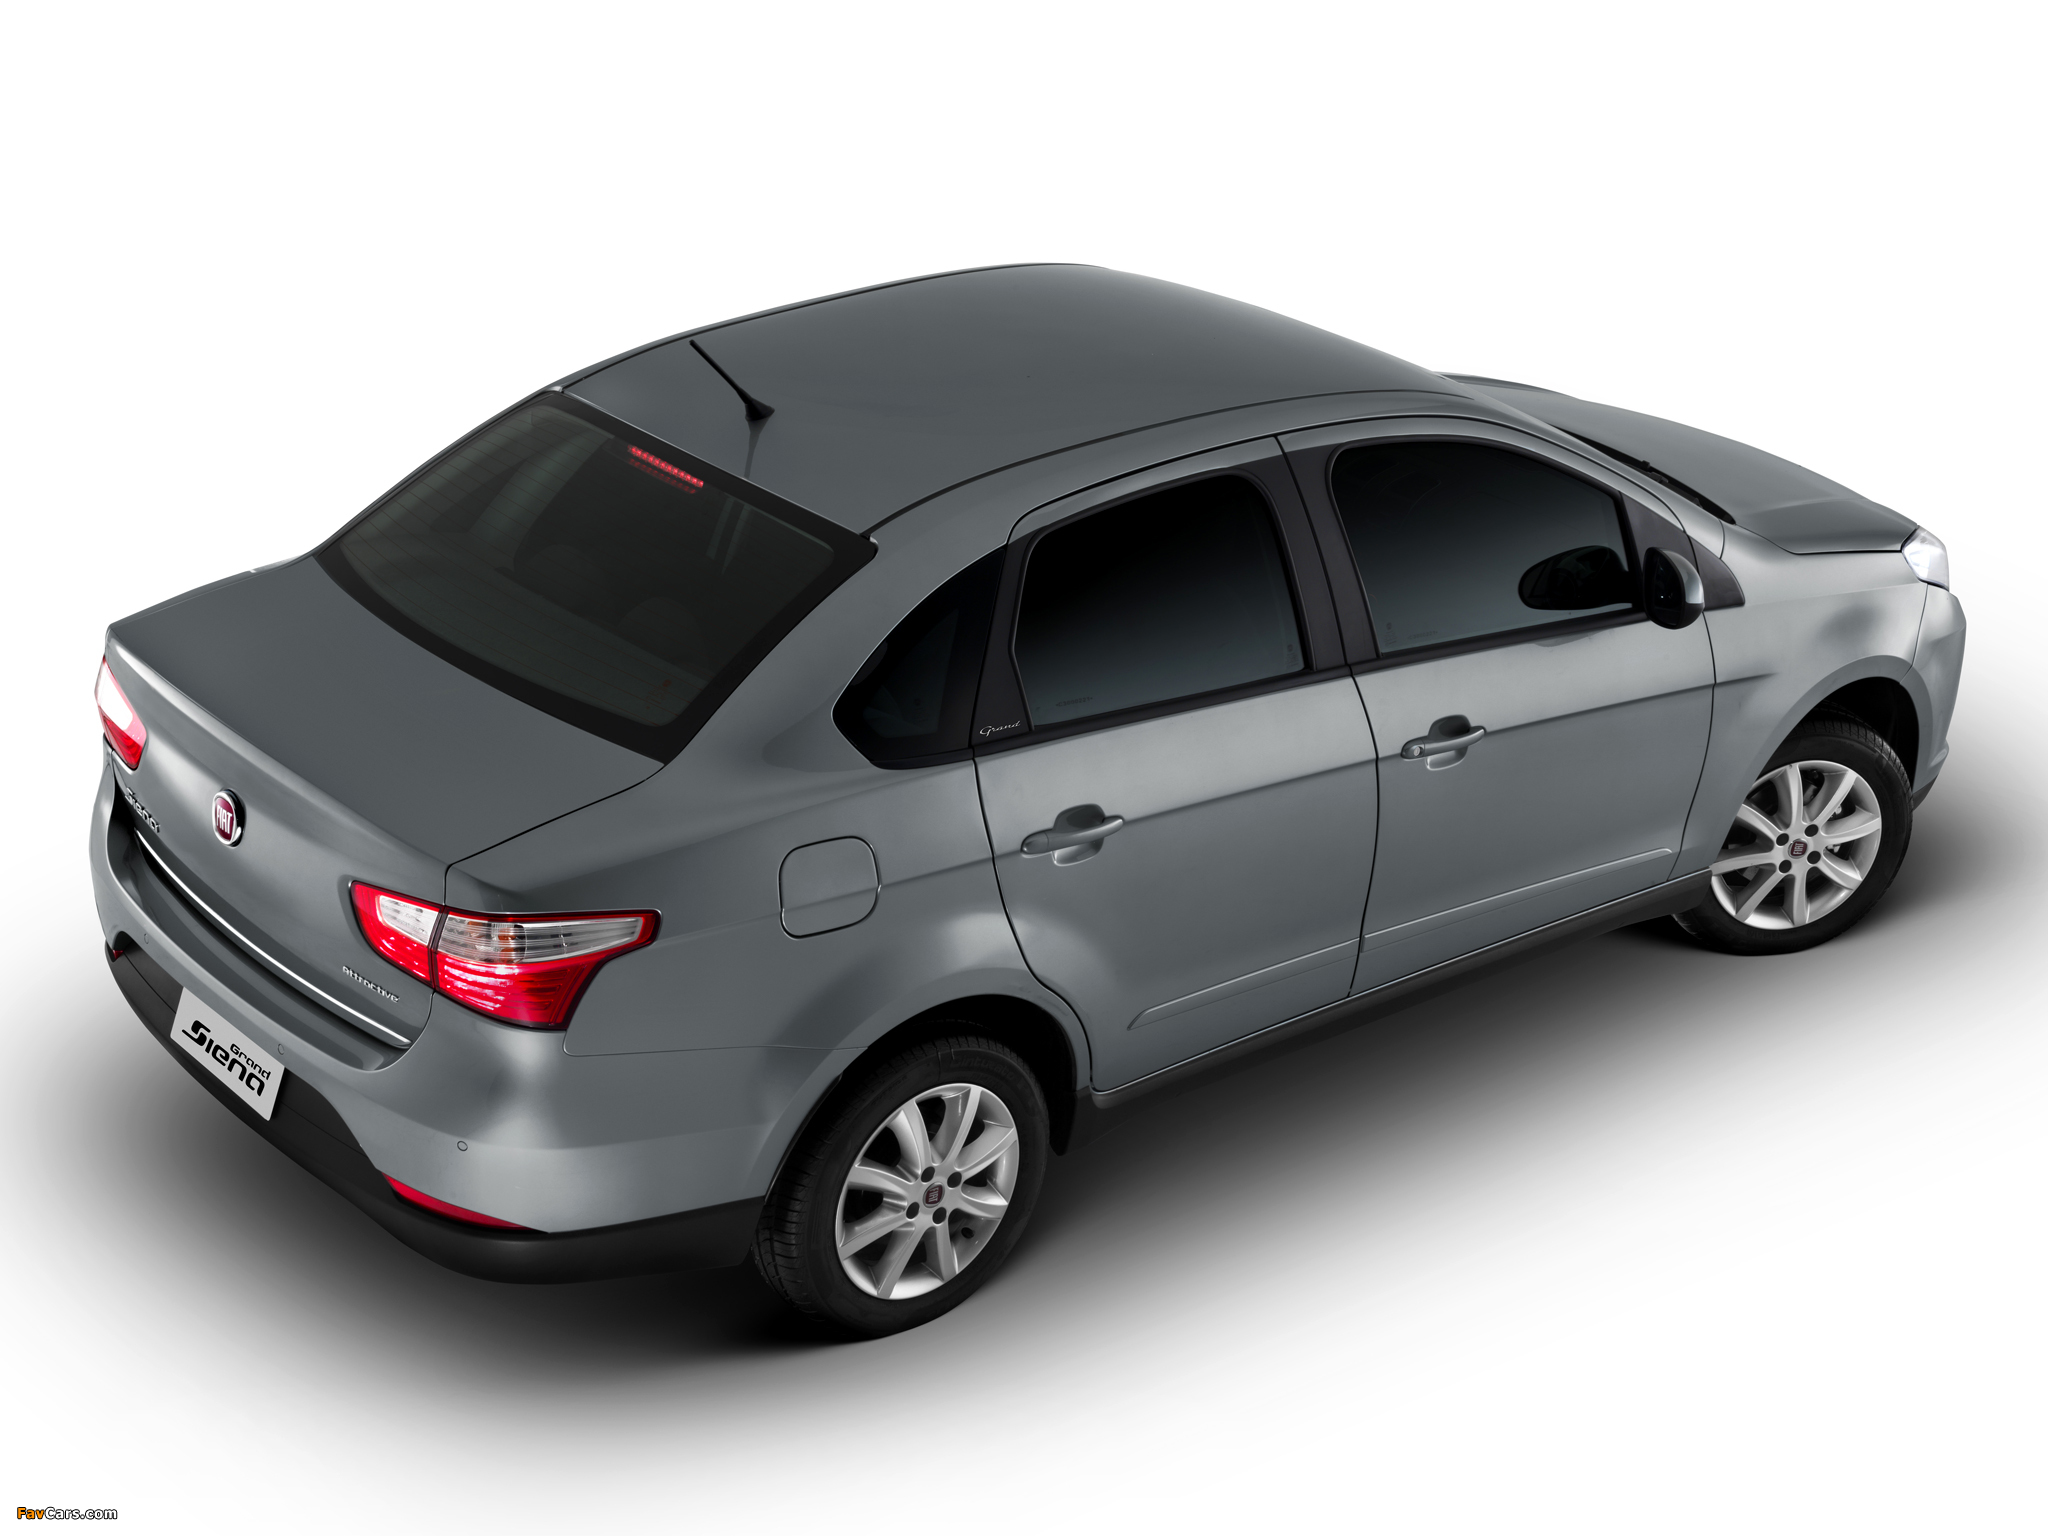 Fiat Grand Siena Attractive (326) 2012 images (2048 x 1536)